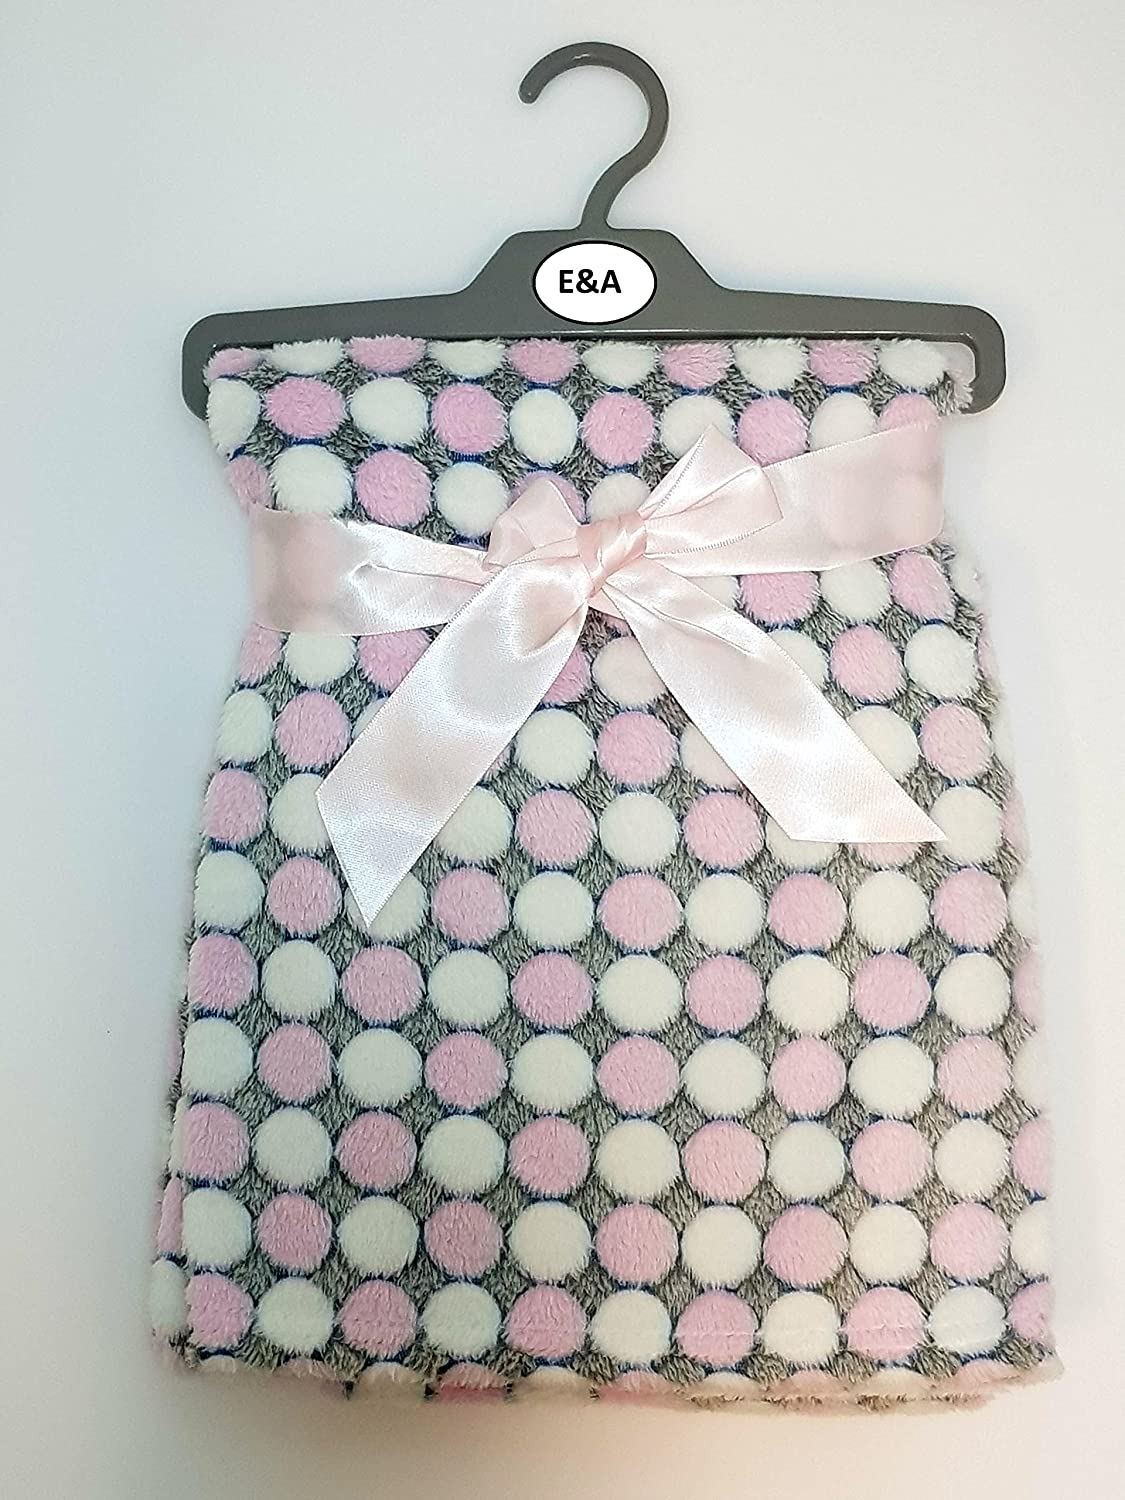 Luxury Soft Fleece Baby Blanket with Cute Dots Design 75 x 100cm for Babies from Newborn (Blue) E&A Distribution Limited